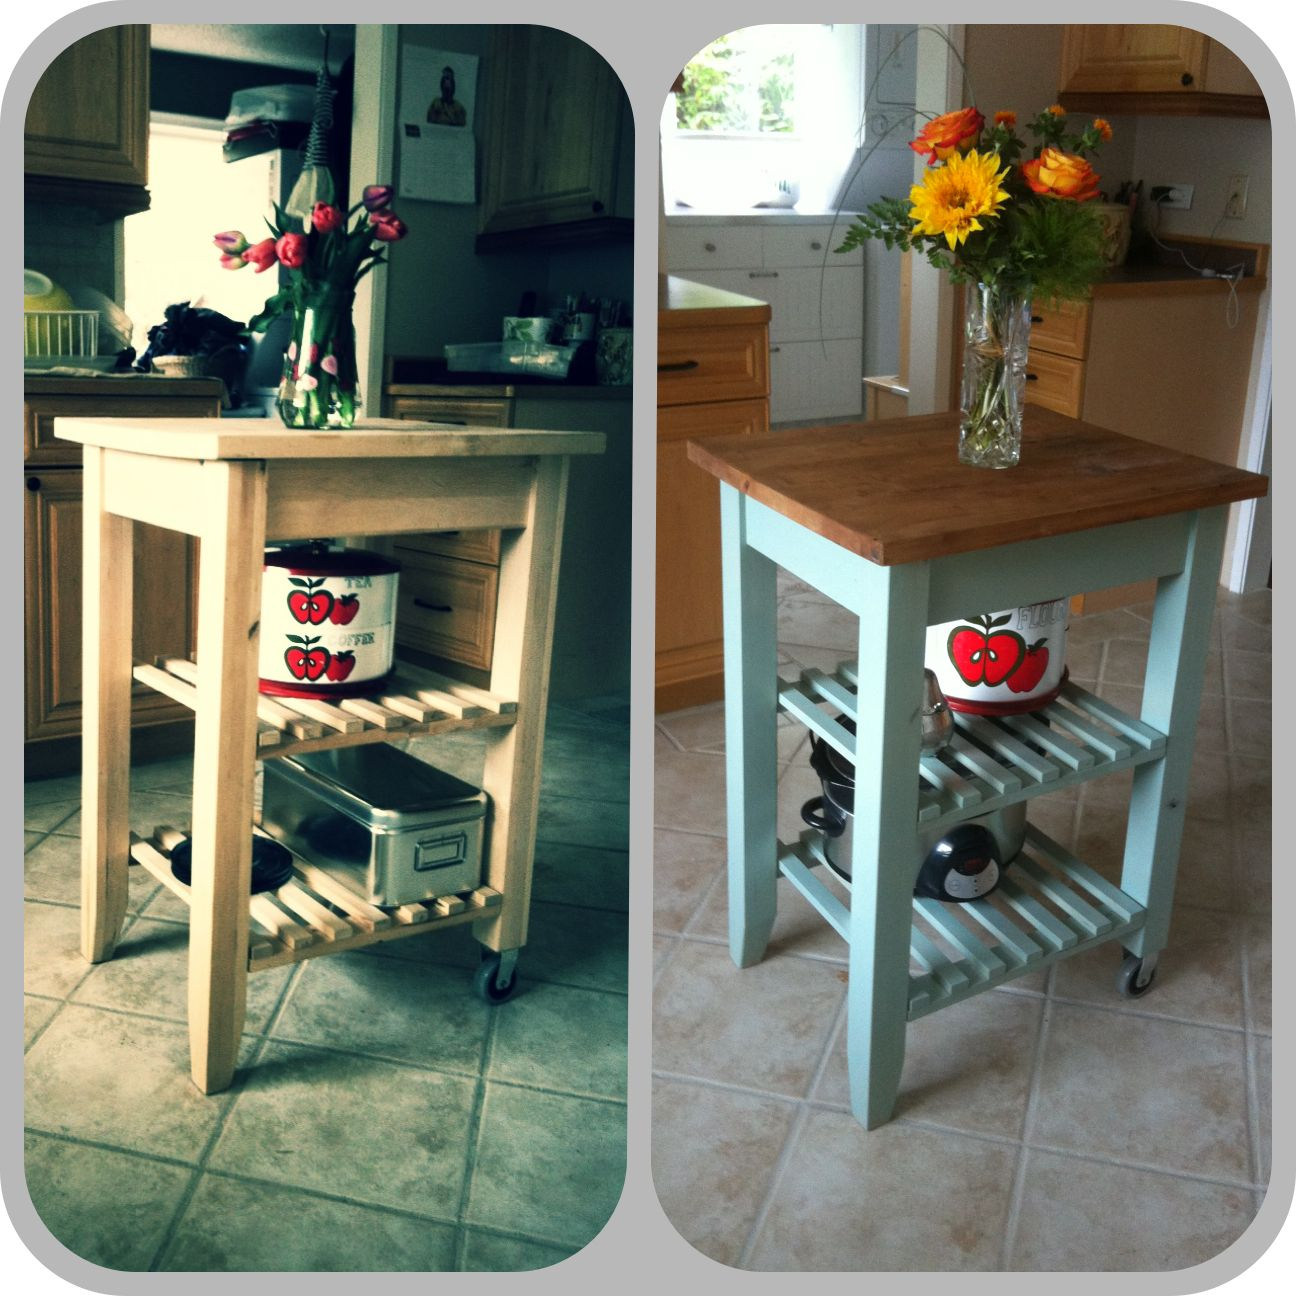 Ikea kitchen cart | For Our New Home | Pinterest | Küche und Kreativ